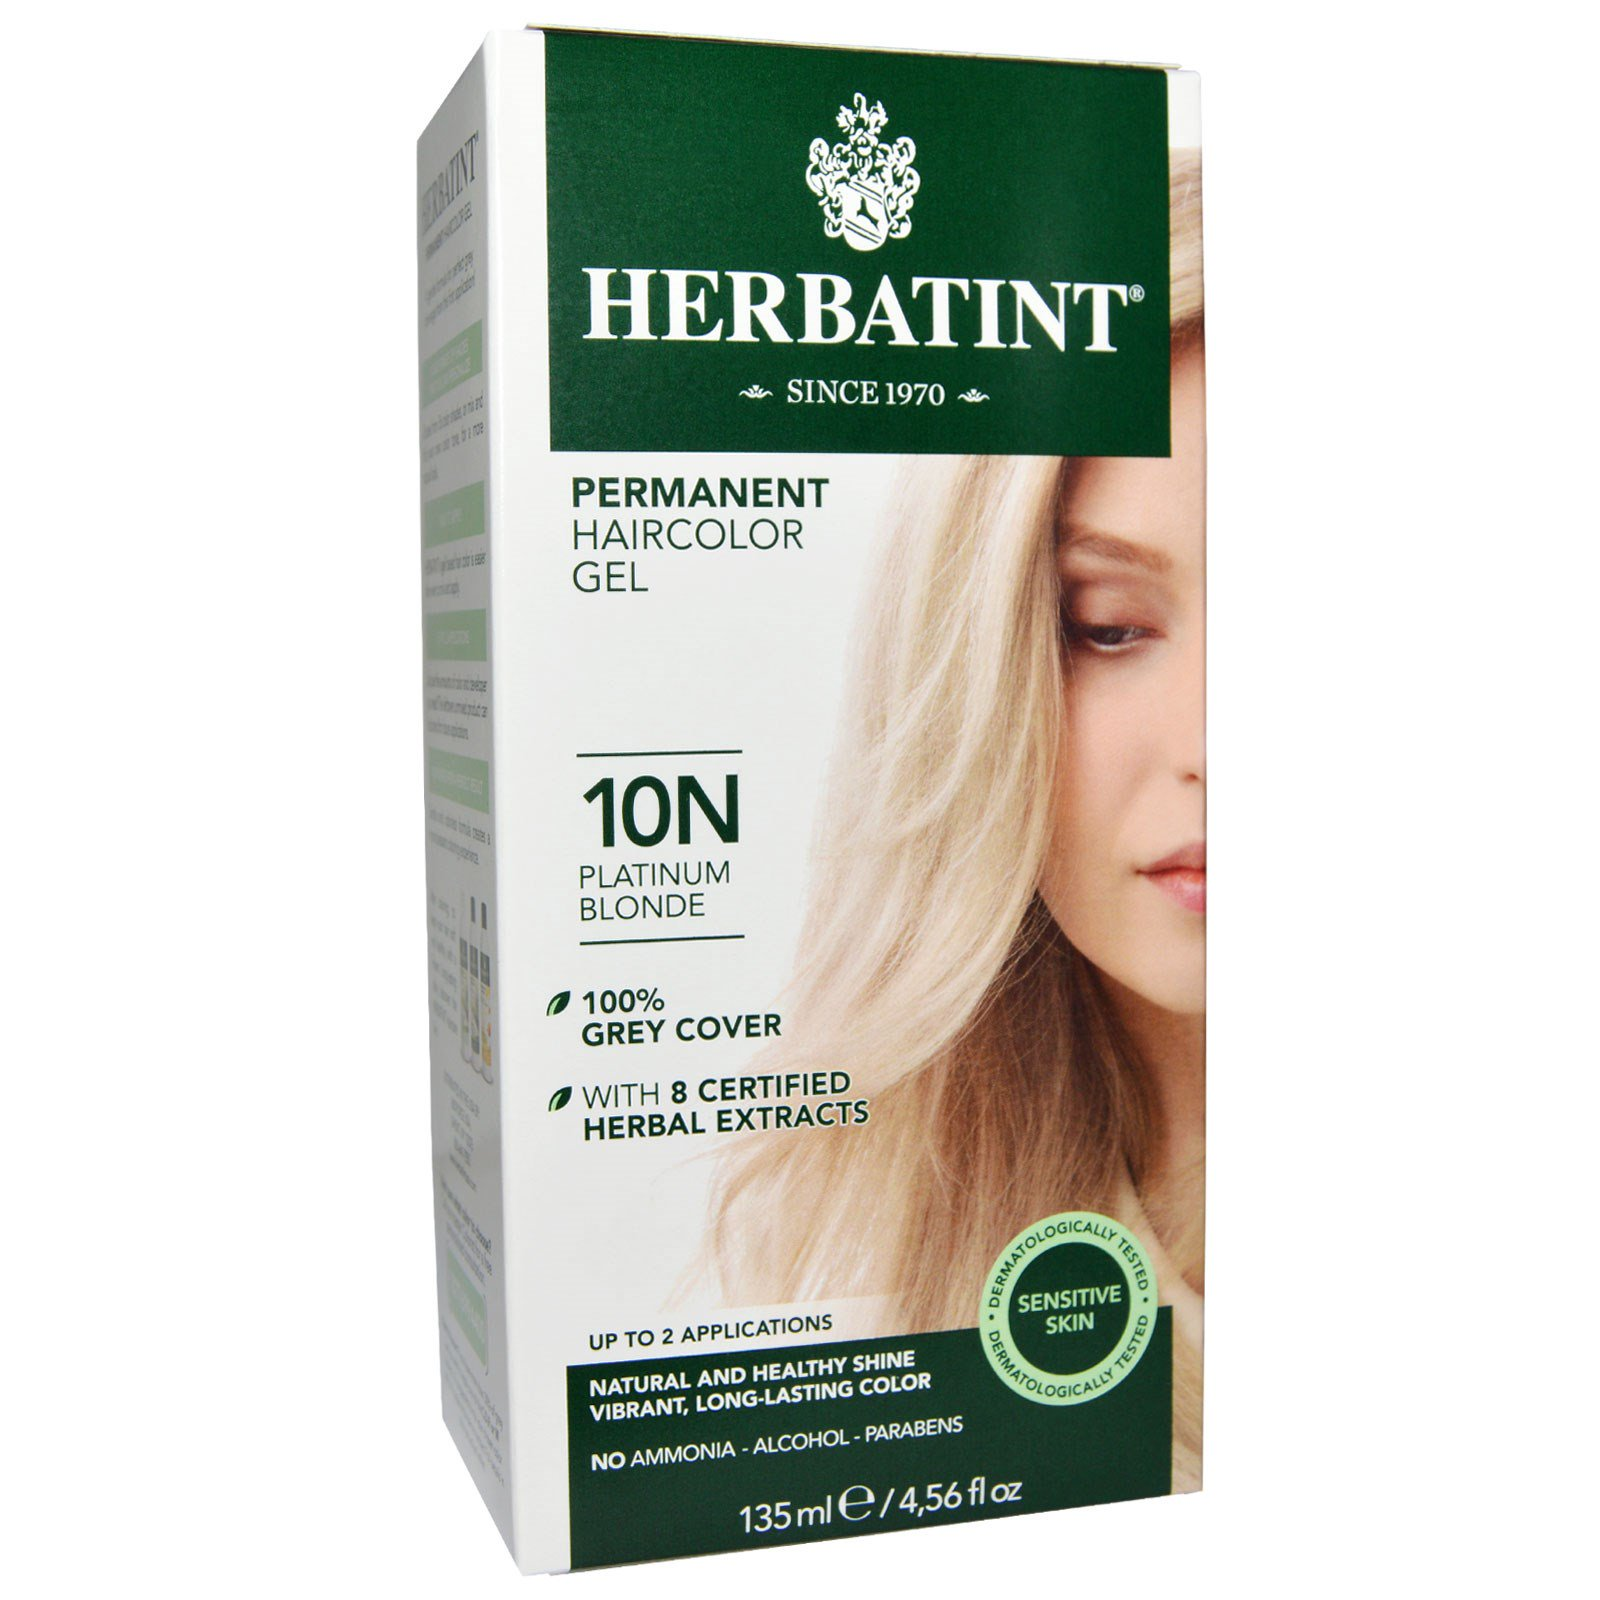 Herbatint, Permanent Haircolor Gel, 10N Platinum Blonde, 4.56 fl oz ...